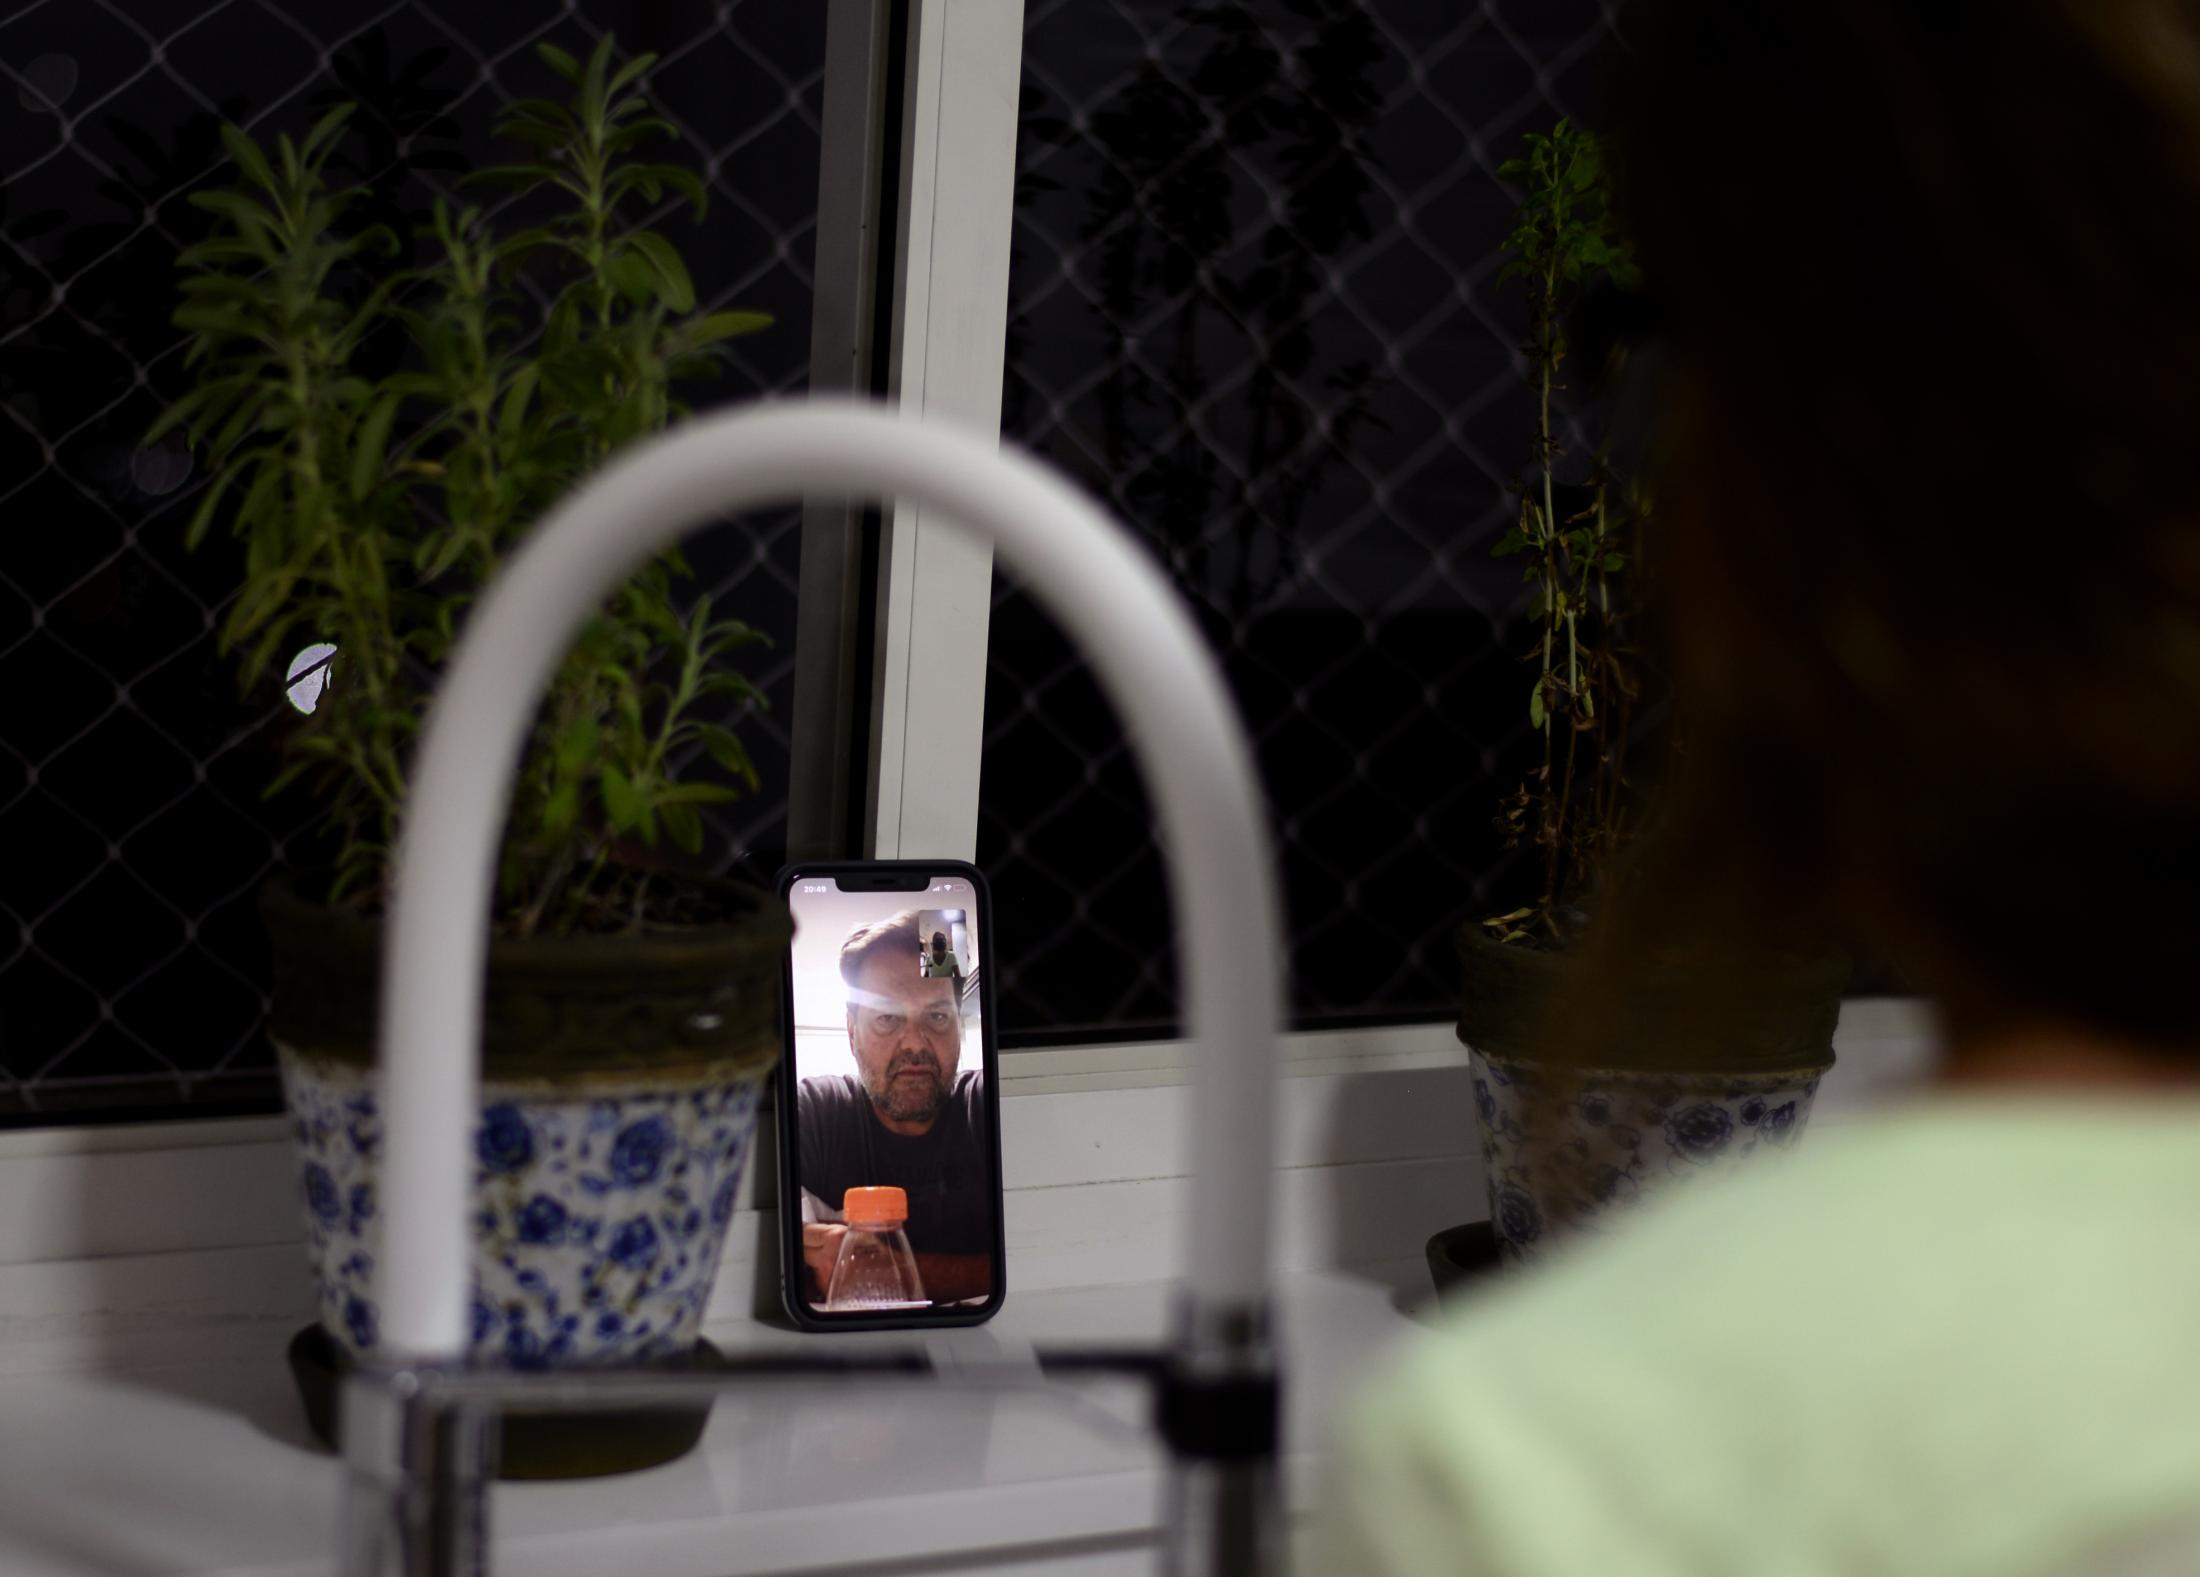 Communication with my dad was always through video calls. We would try to have meals online and spend time with him online. We didn't want to leave him alone